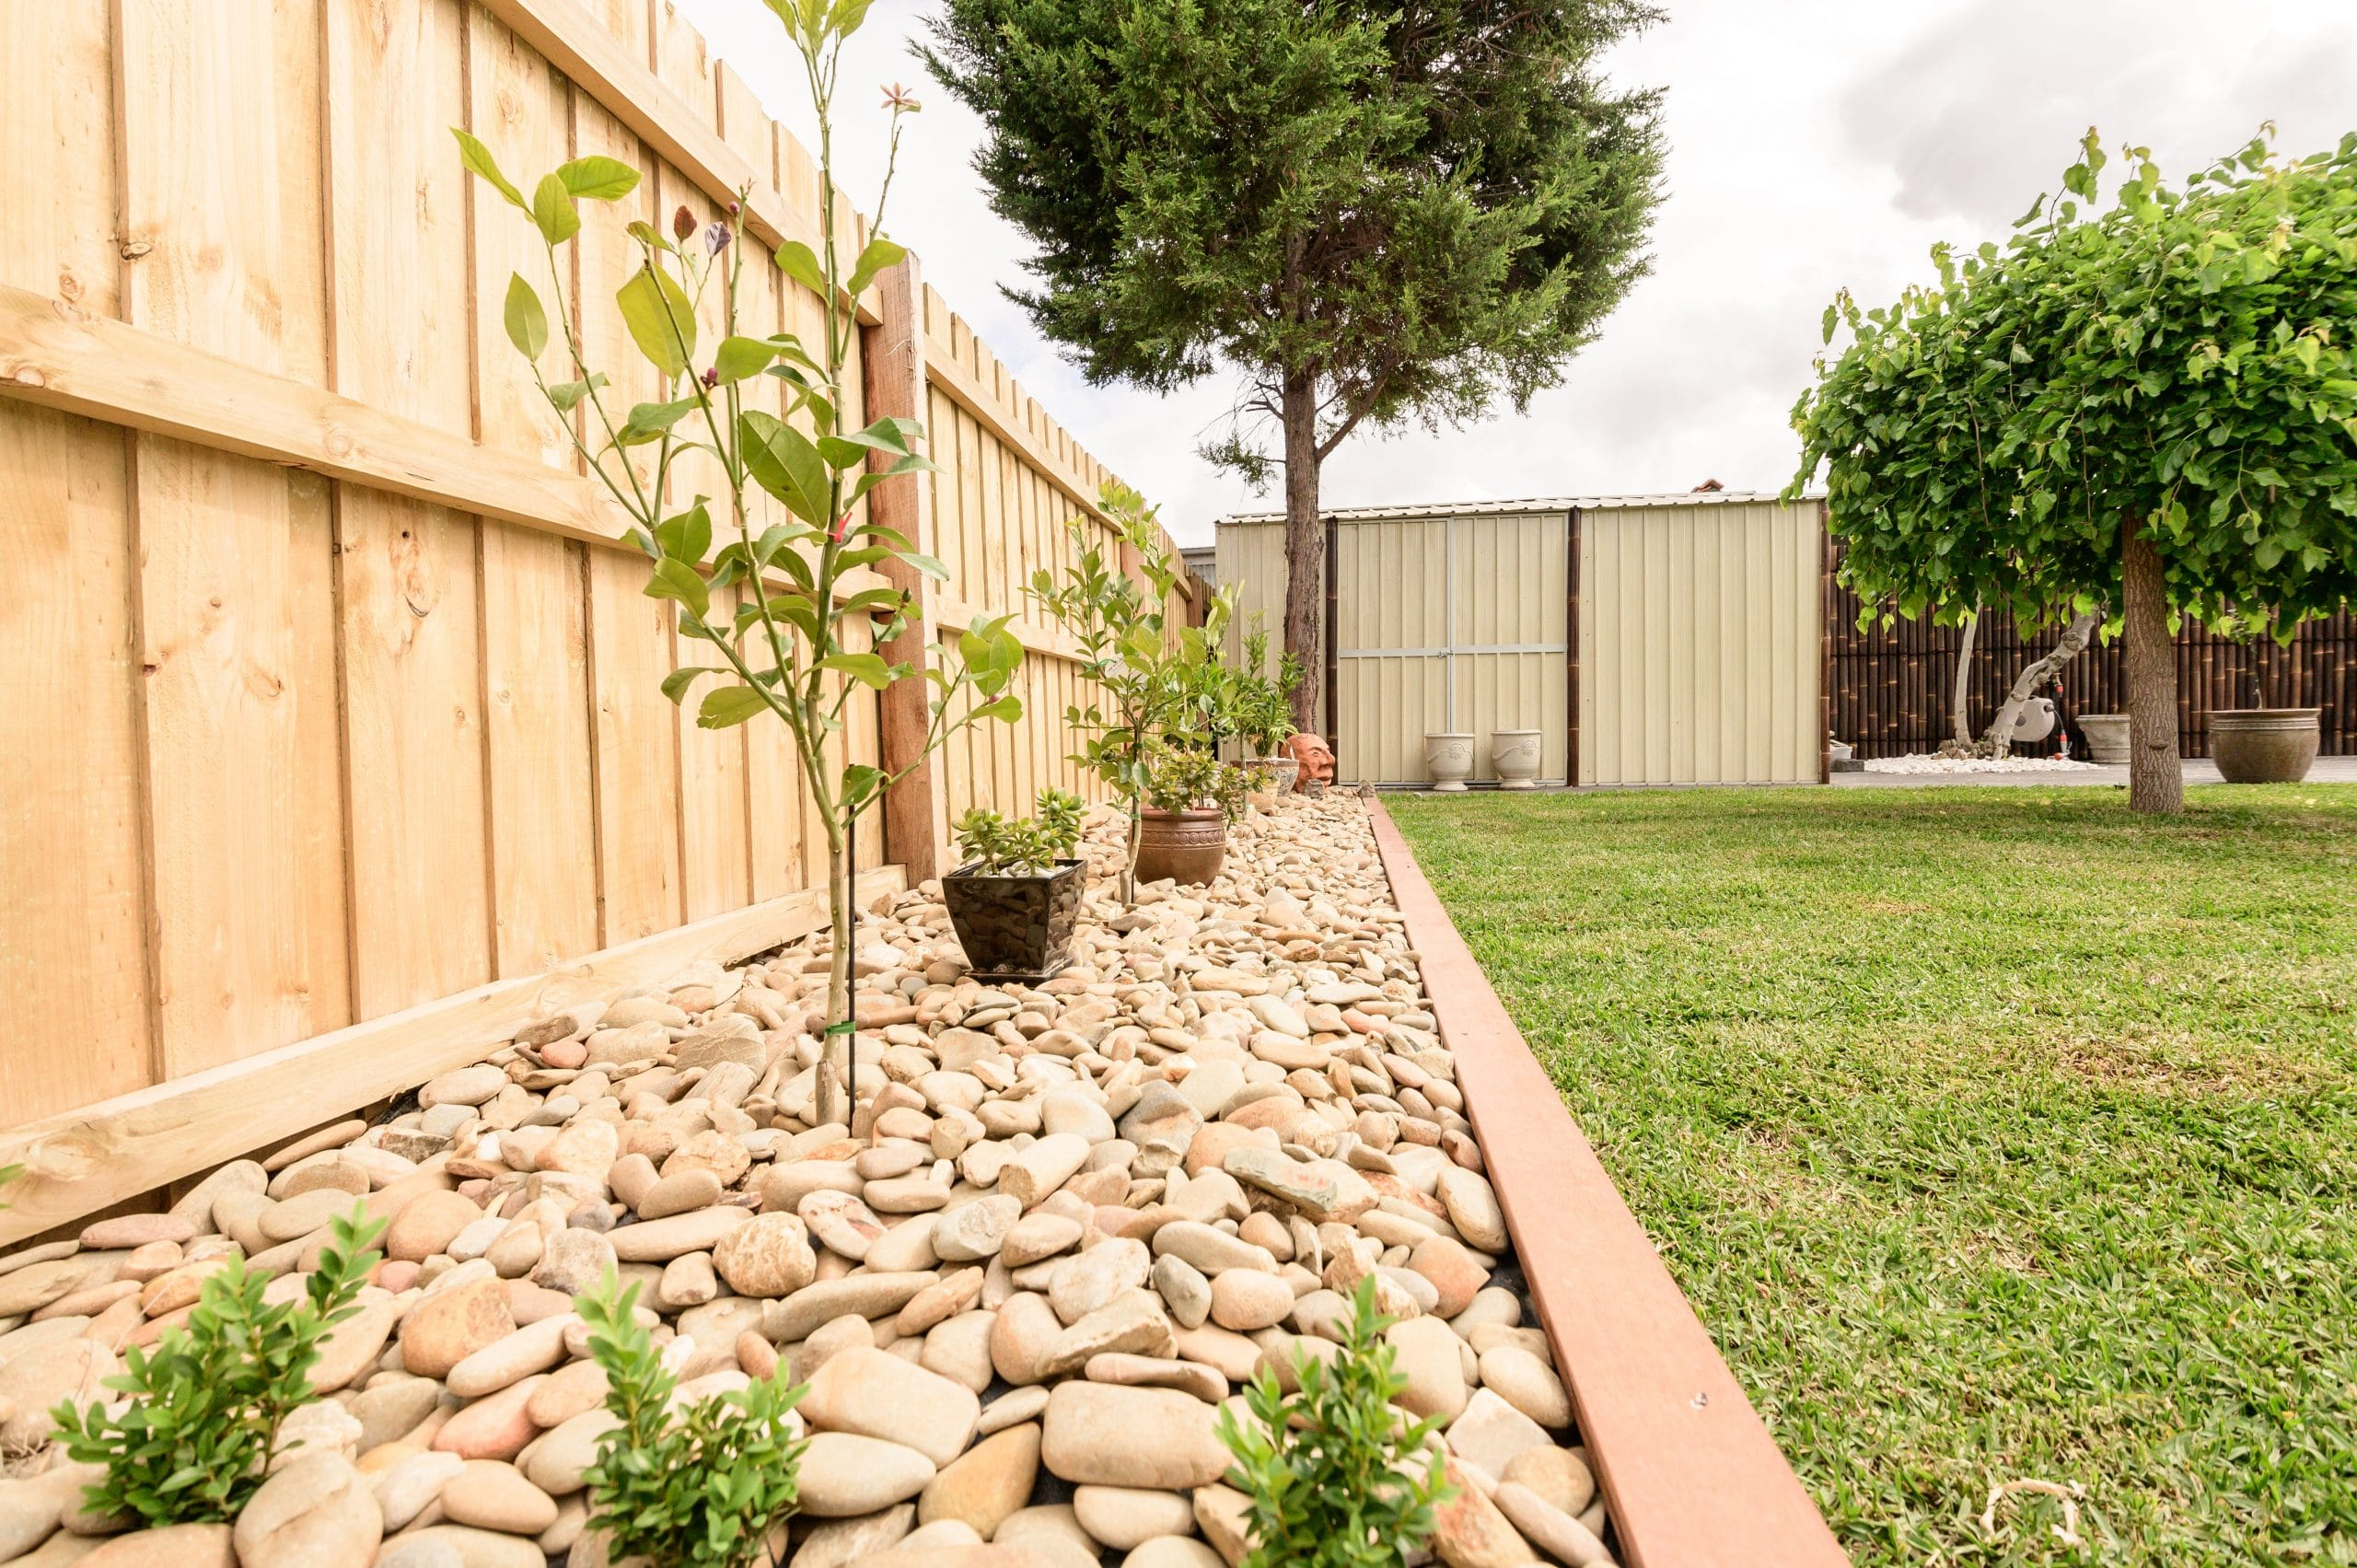 L256 - Ascot Vale - Garden with rocks